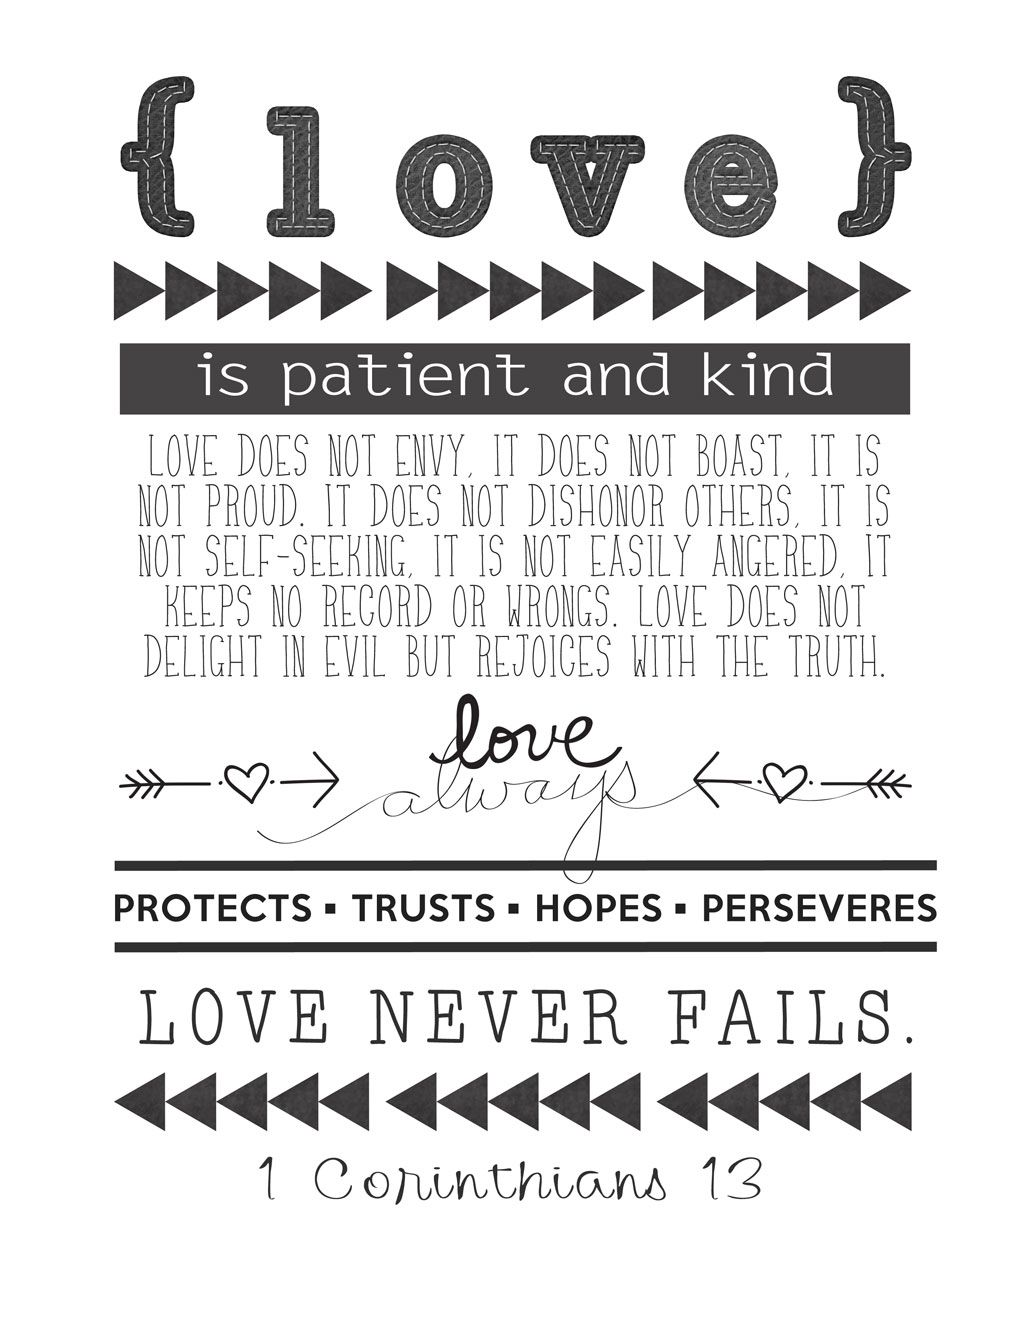 1 Corinthians 13 reminder of how by these traits we show